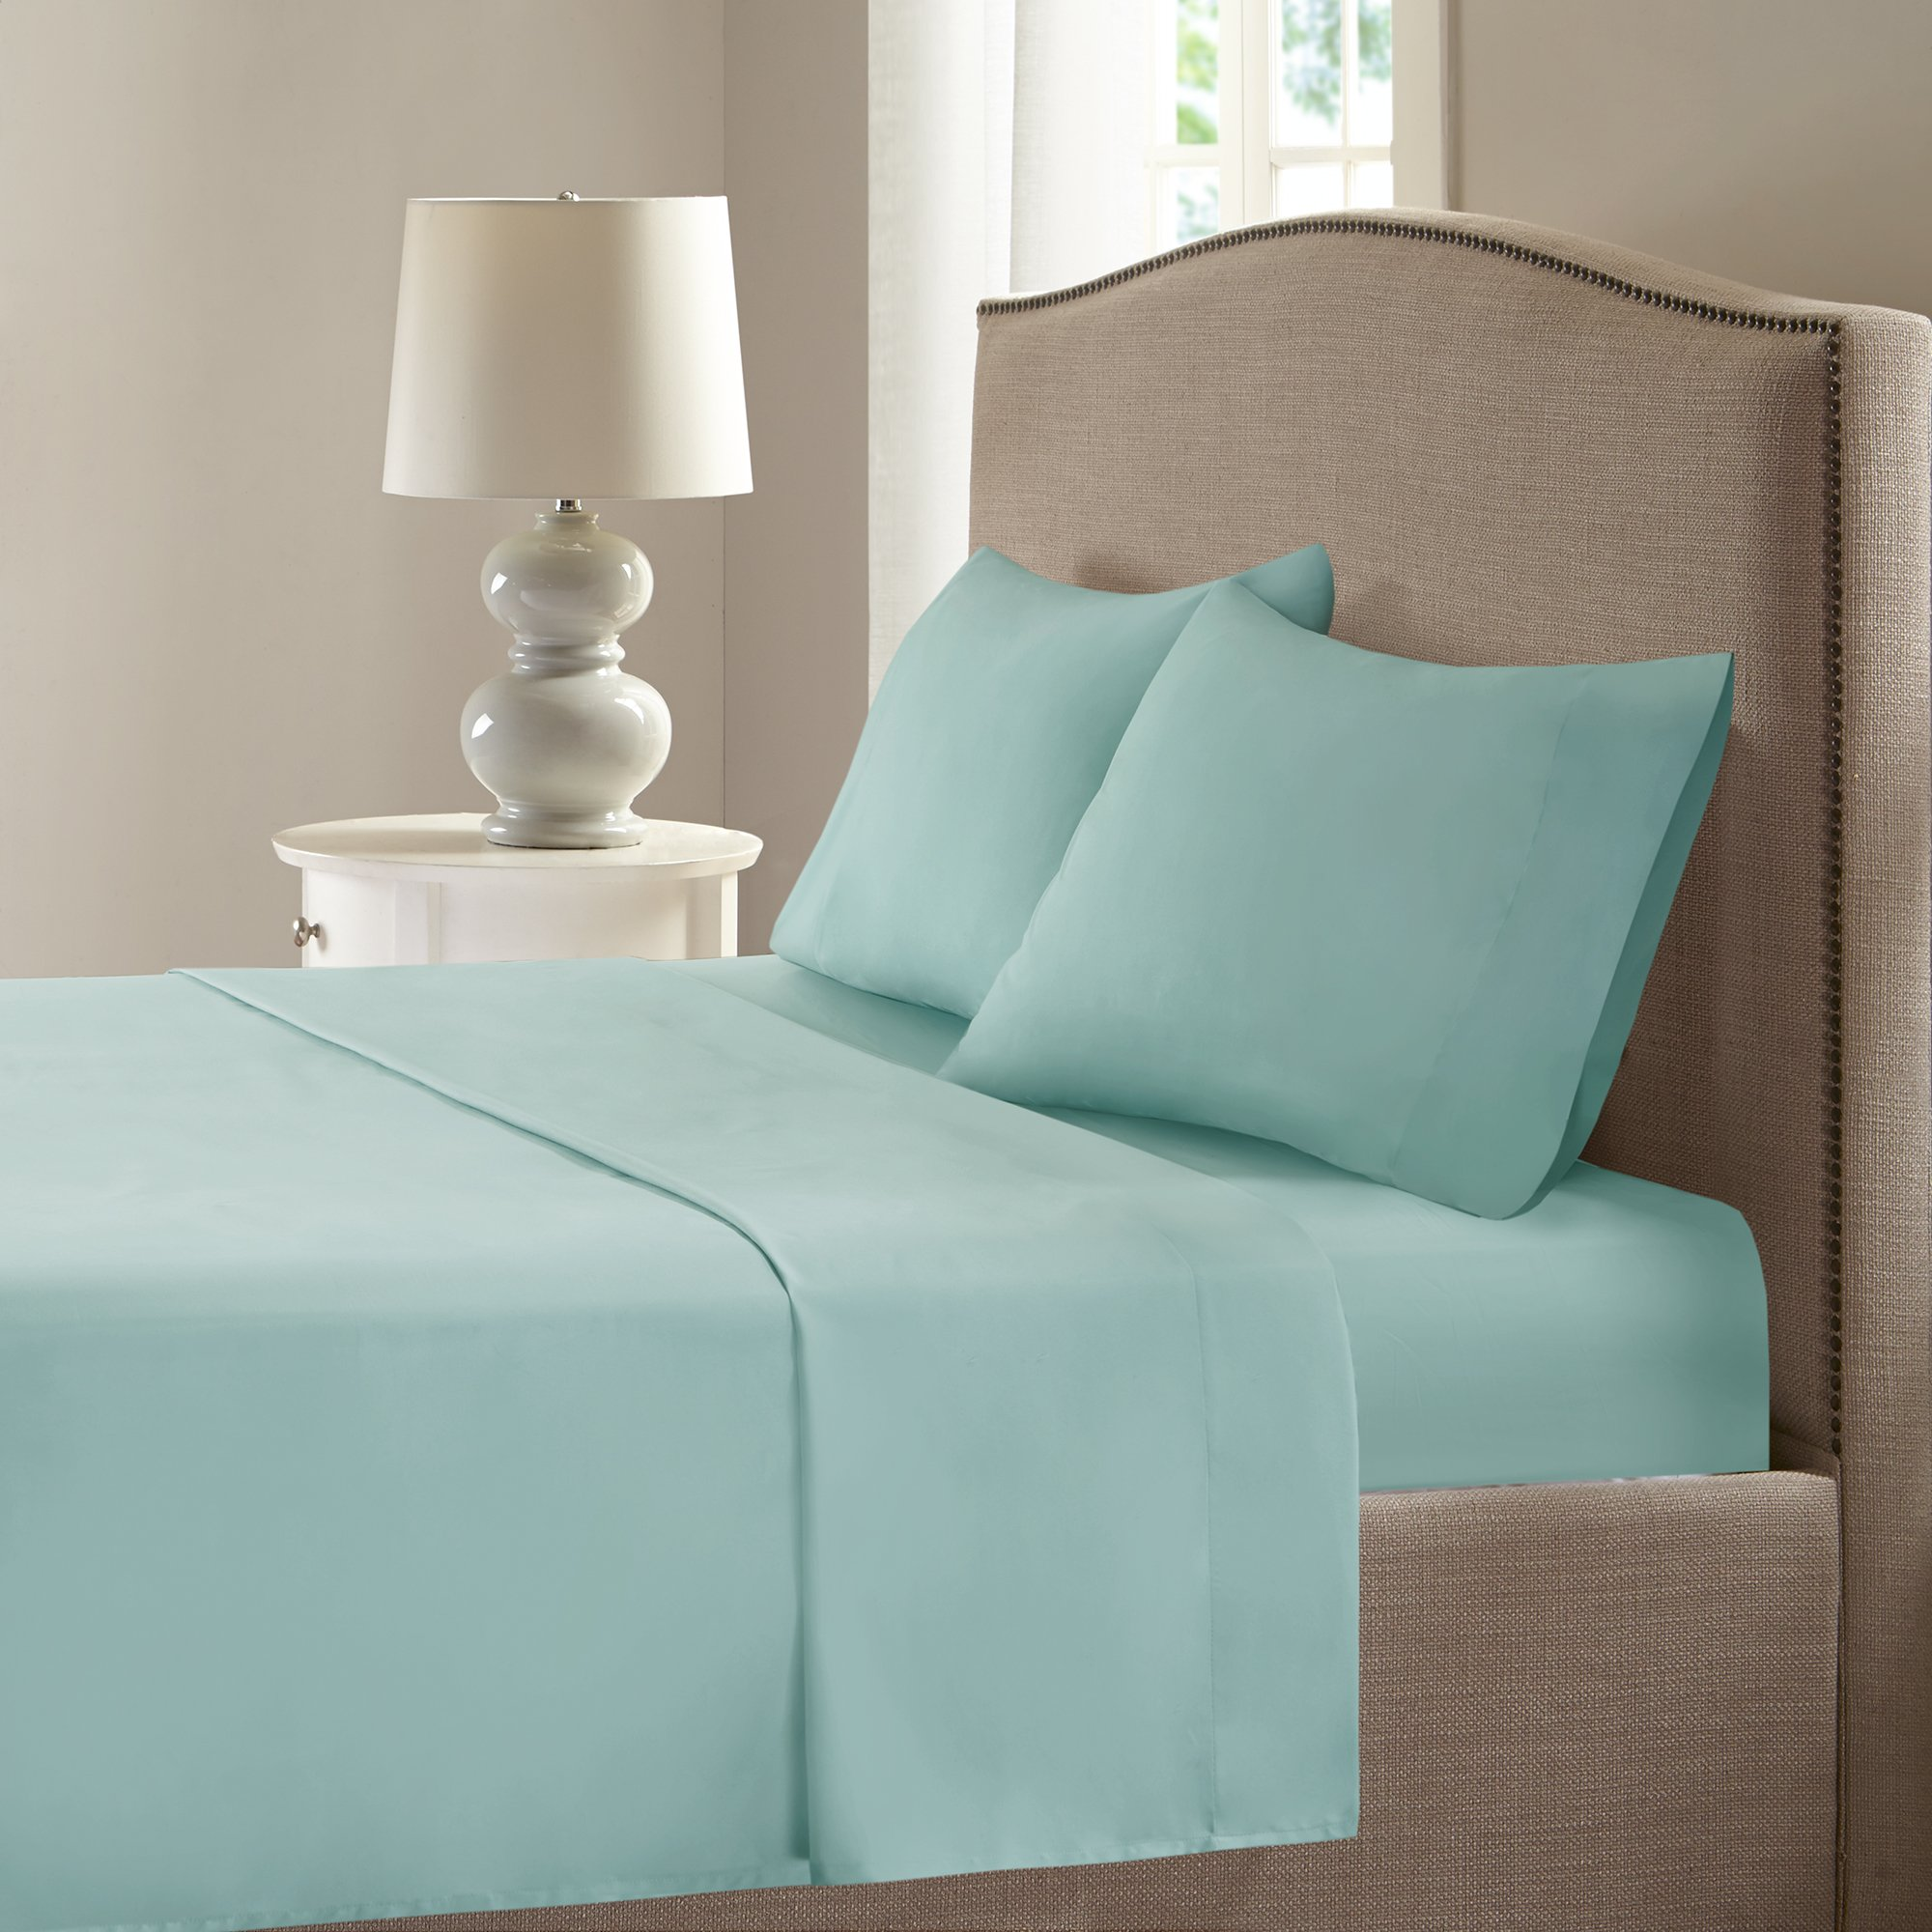 Smart Cool Bed Sheets Set - Microfiber Moisture Wicking Fabric Bedding - Full Size Sheets - Aqua Incl. Flat Sheet, Fitted Sheet and 2 Pillow Cases